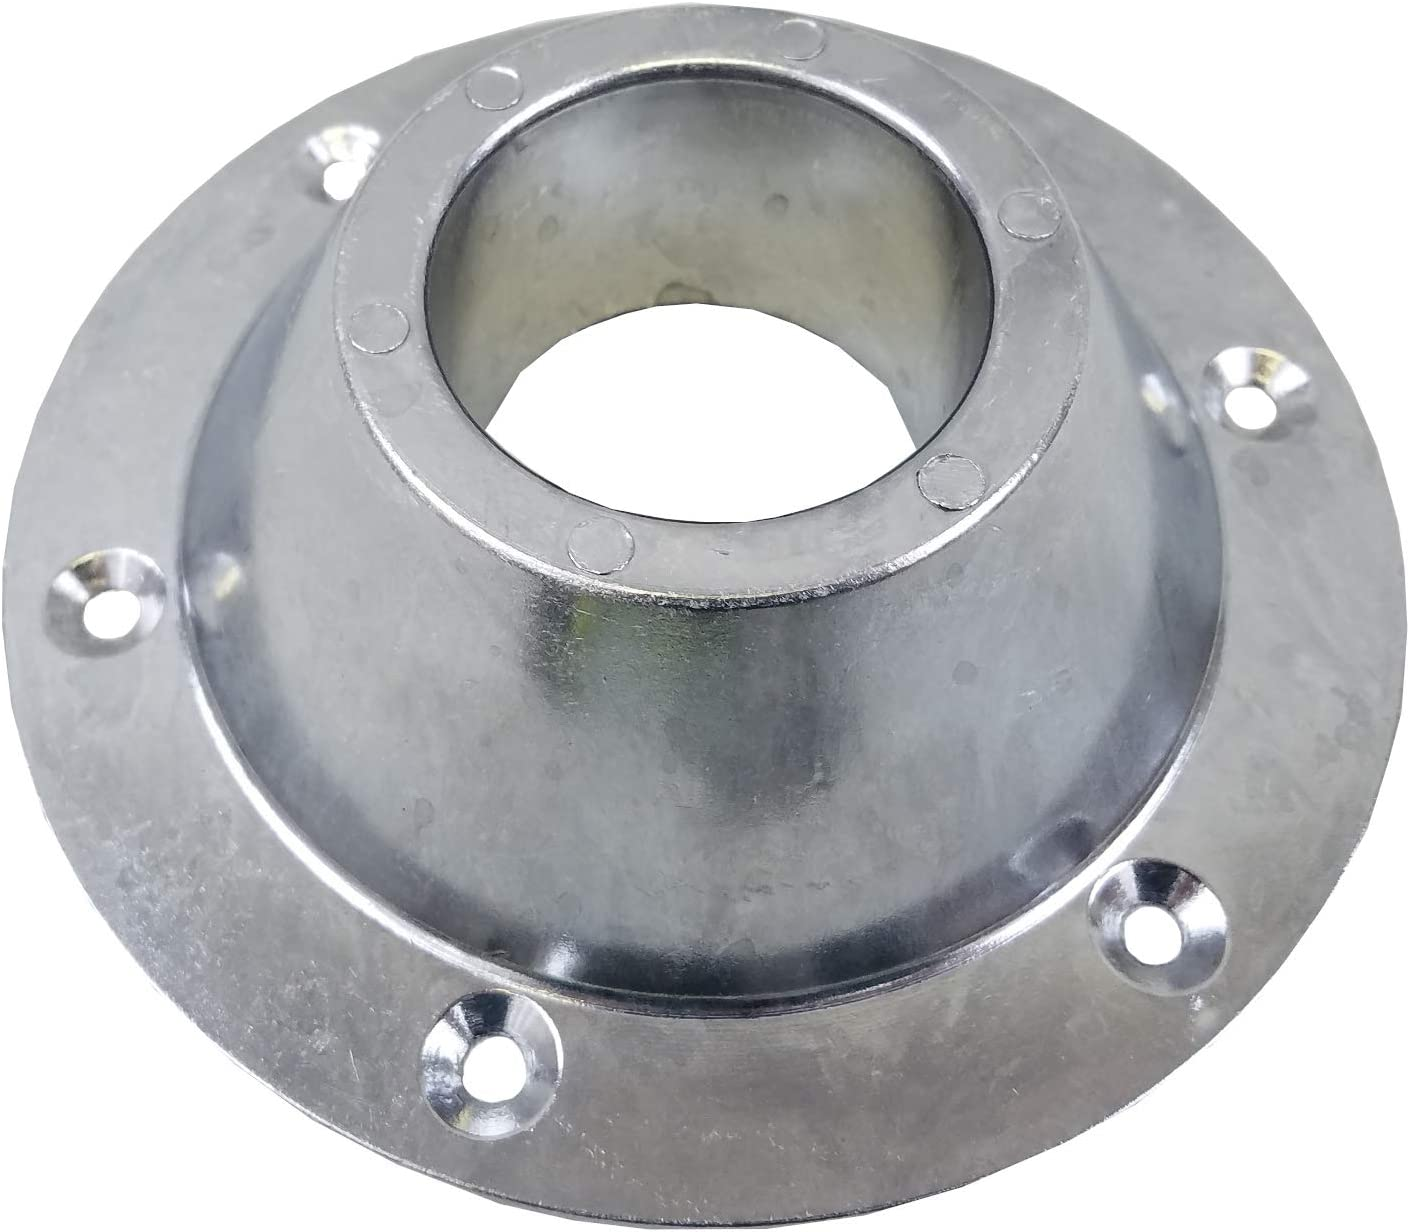 Hengs 31.5 RECESSED RV Chrome Straight Table Leg Kit 1 Leg - 1 Surface Mount - 1 Recessed Base Class A Customs